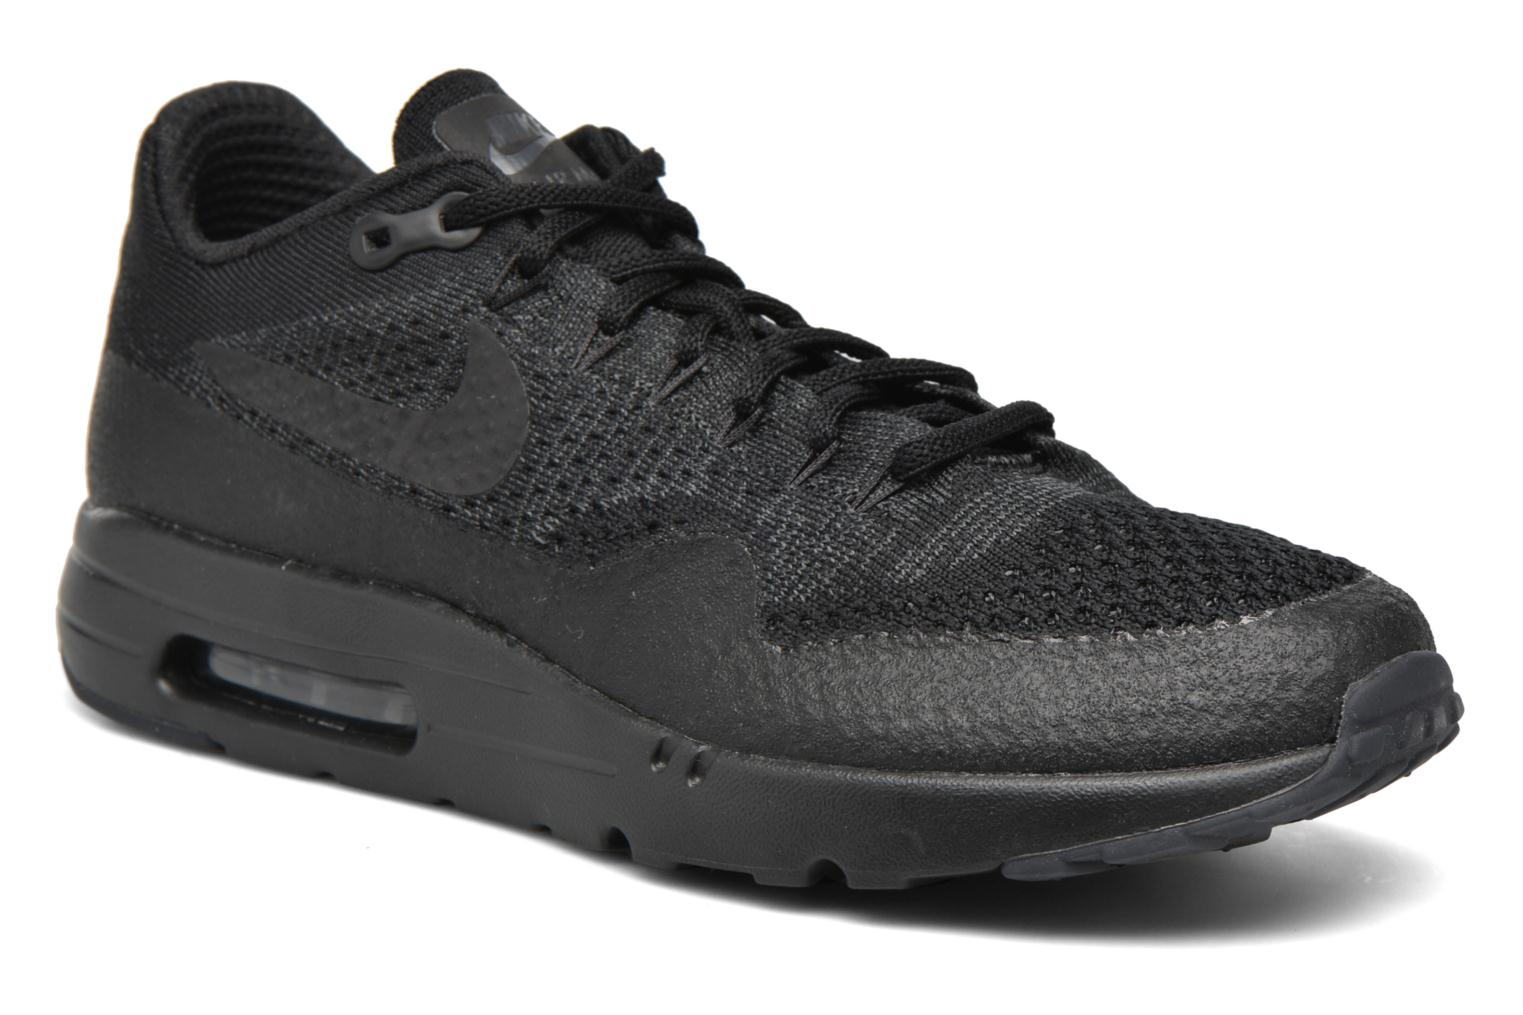 Ultra Nike Nike Anthracite 1 Air Max Black Black Flyknit wUpCqI